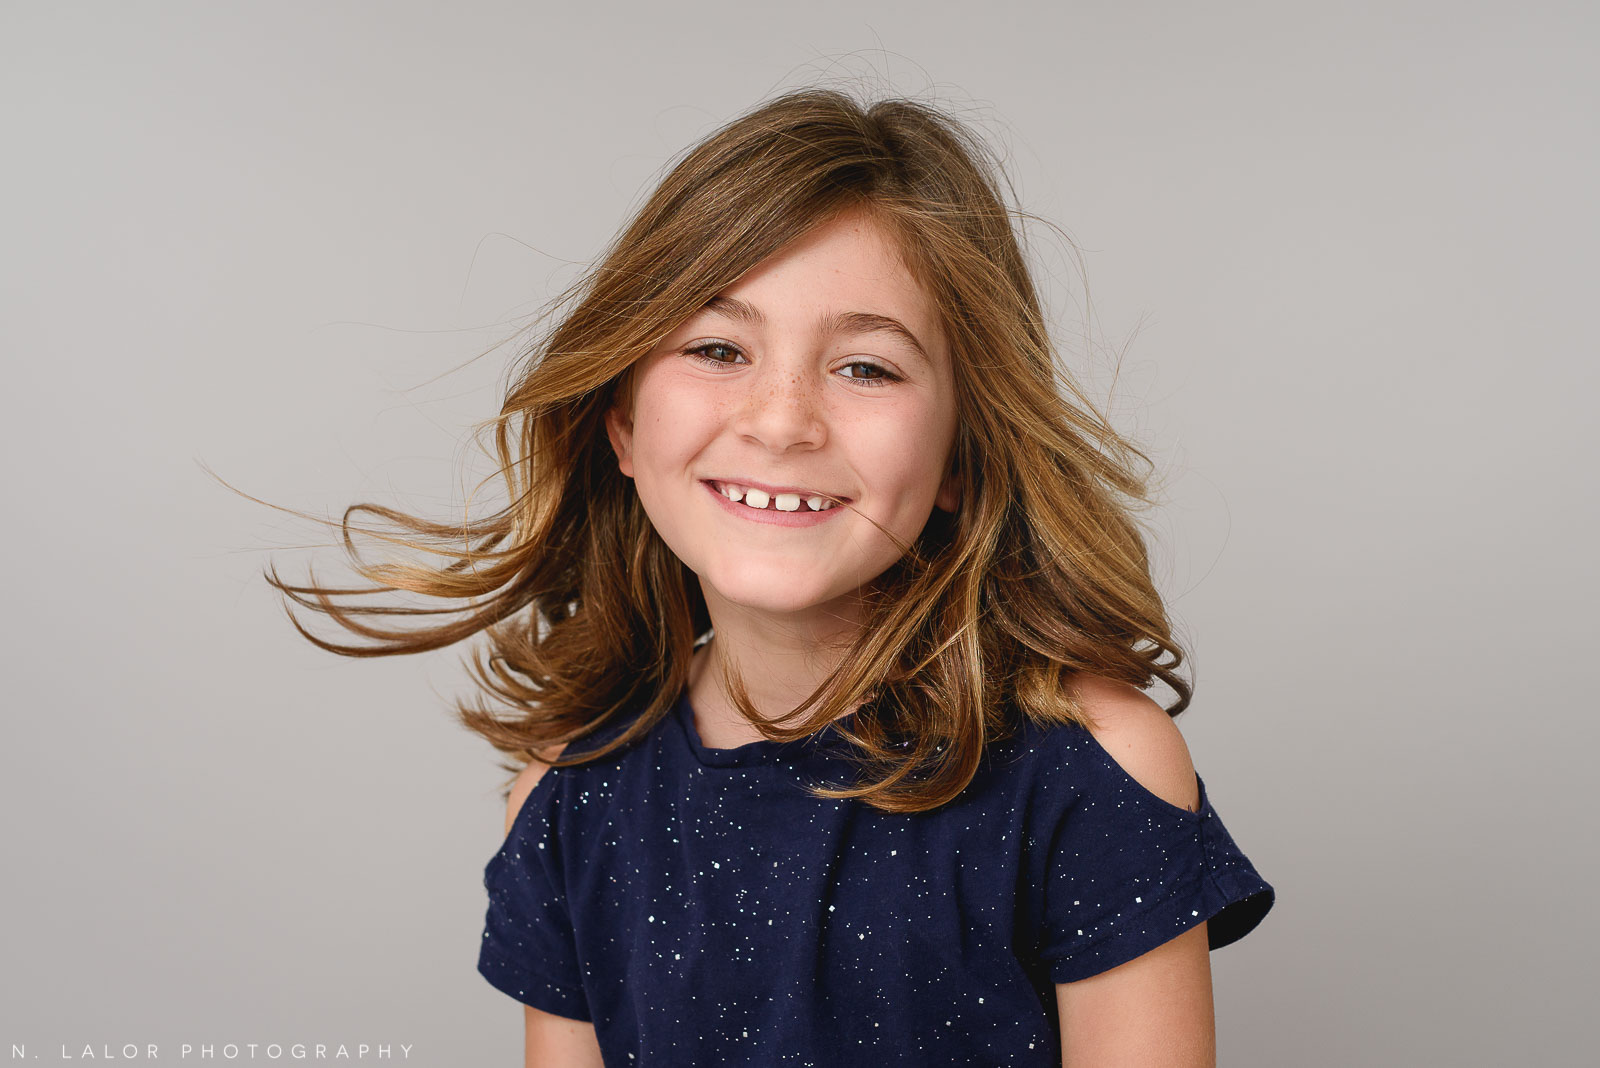 Image of a happy girl with wind blowing her hair.Studio portrait by N. Lalor Photography in Greenwich, Connecticut.